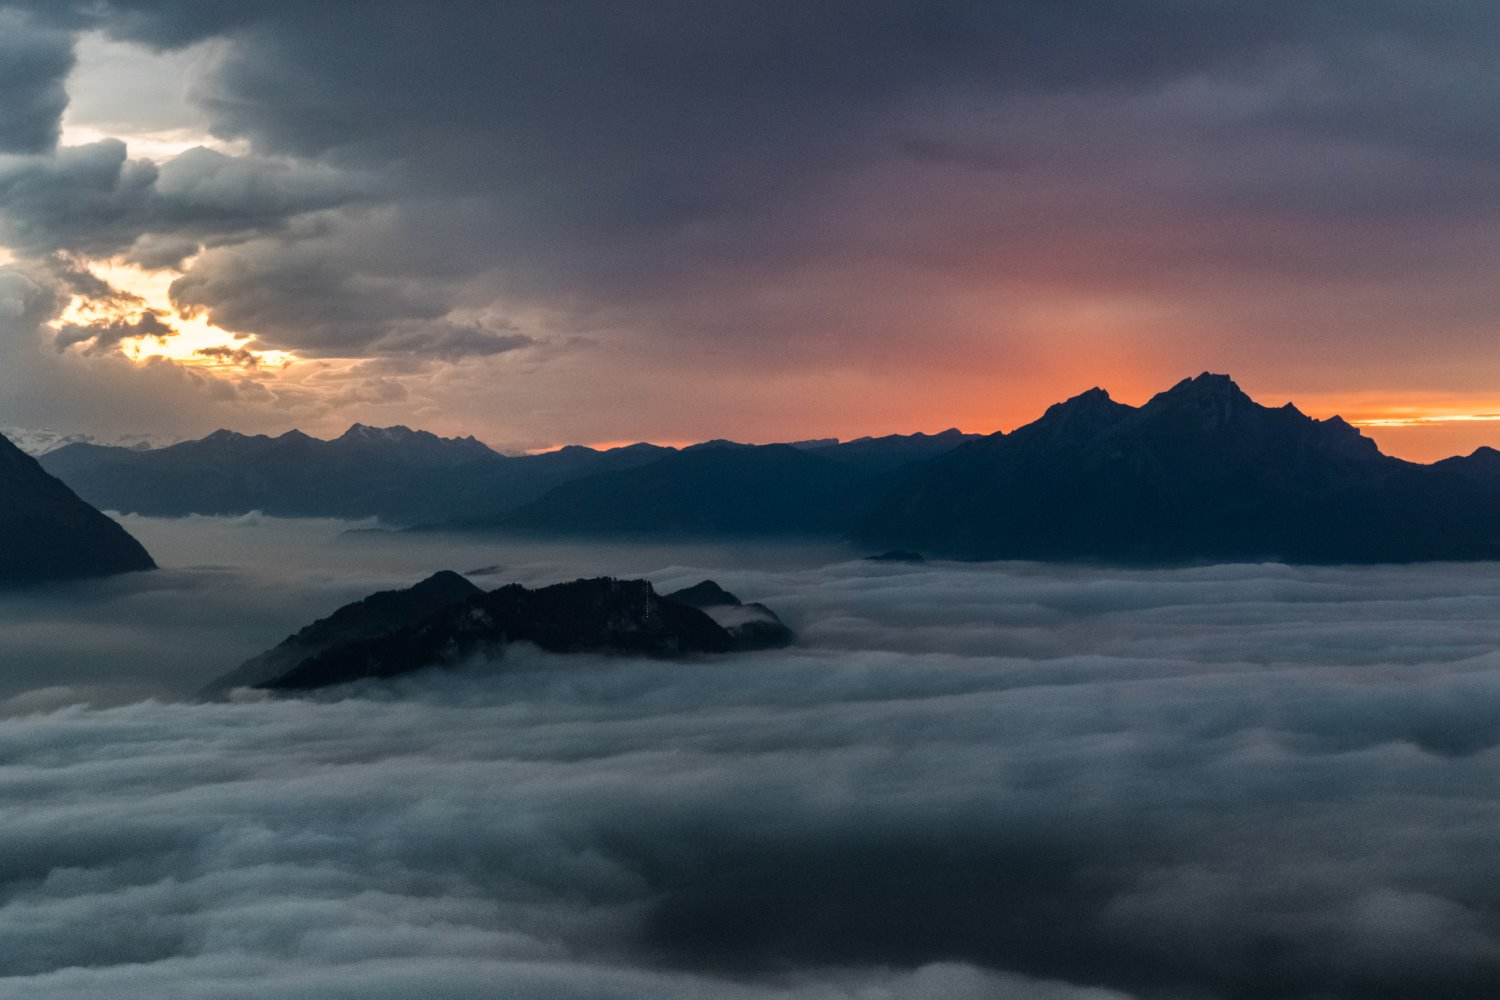 clouds below the mountains